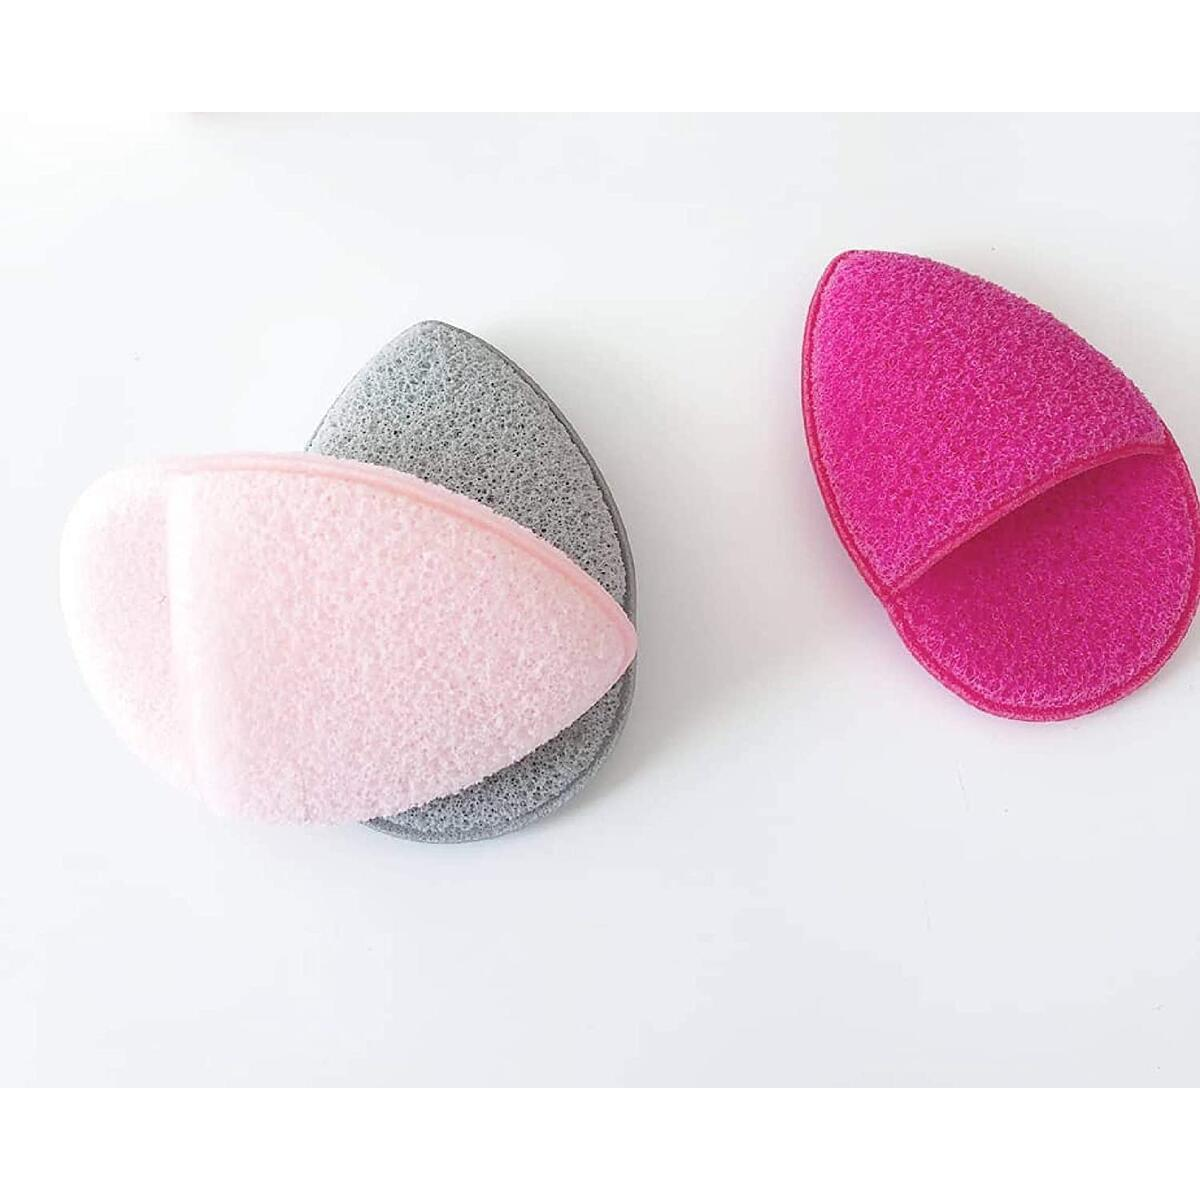 Arie Beauty Exfoliating Bath Sponge for Facial Cleansing -  Reusable Body Sponges For Silky Smoth Skin - 3-Pack for Daily Use 3.75